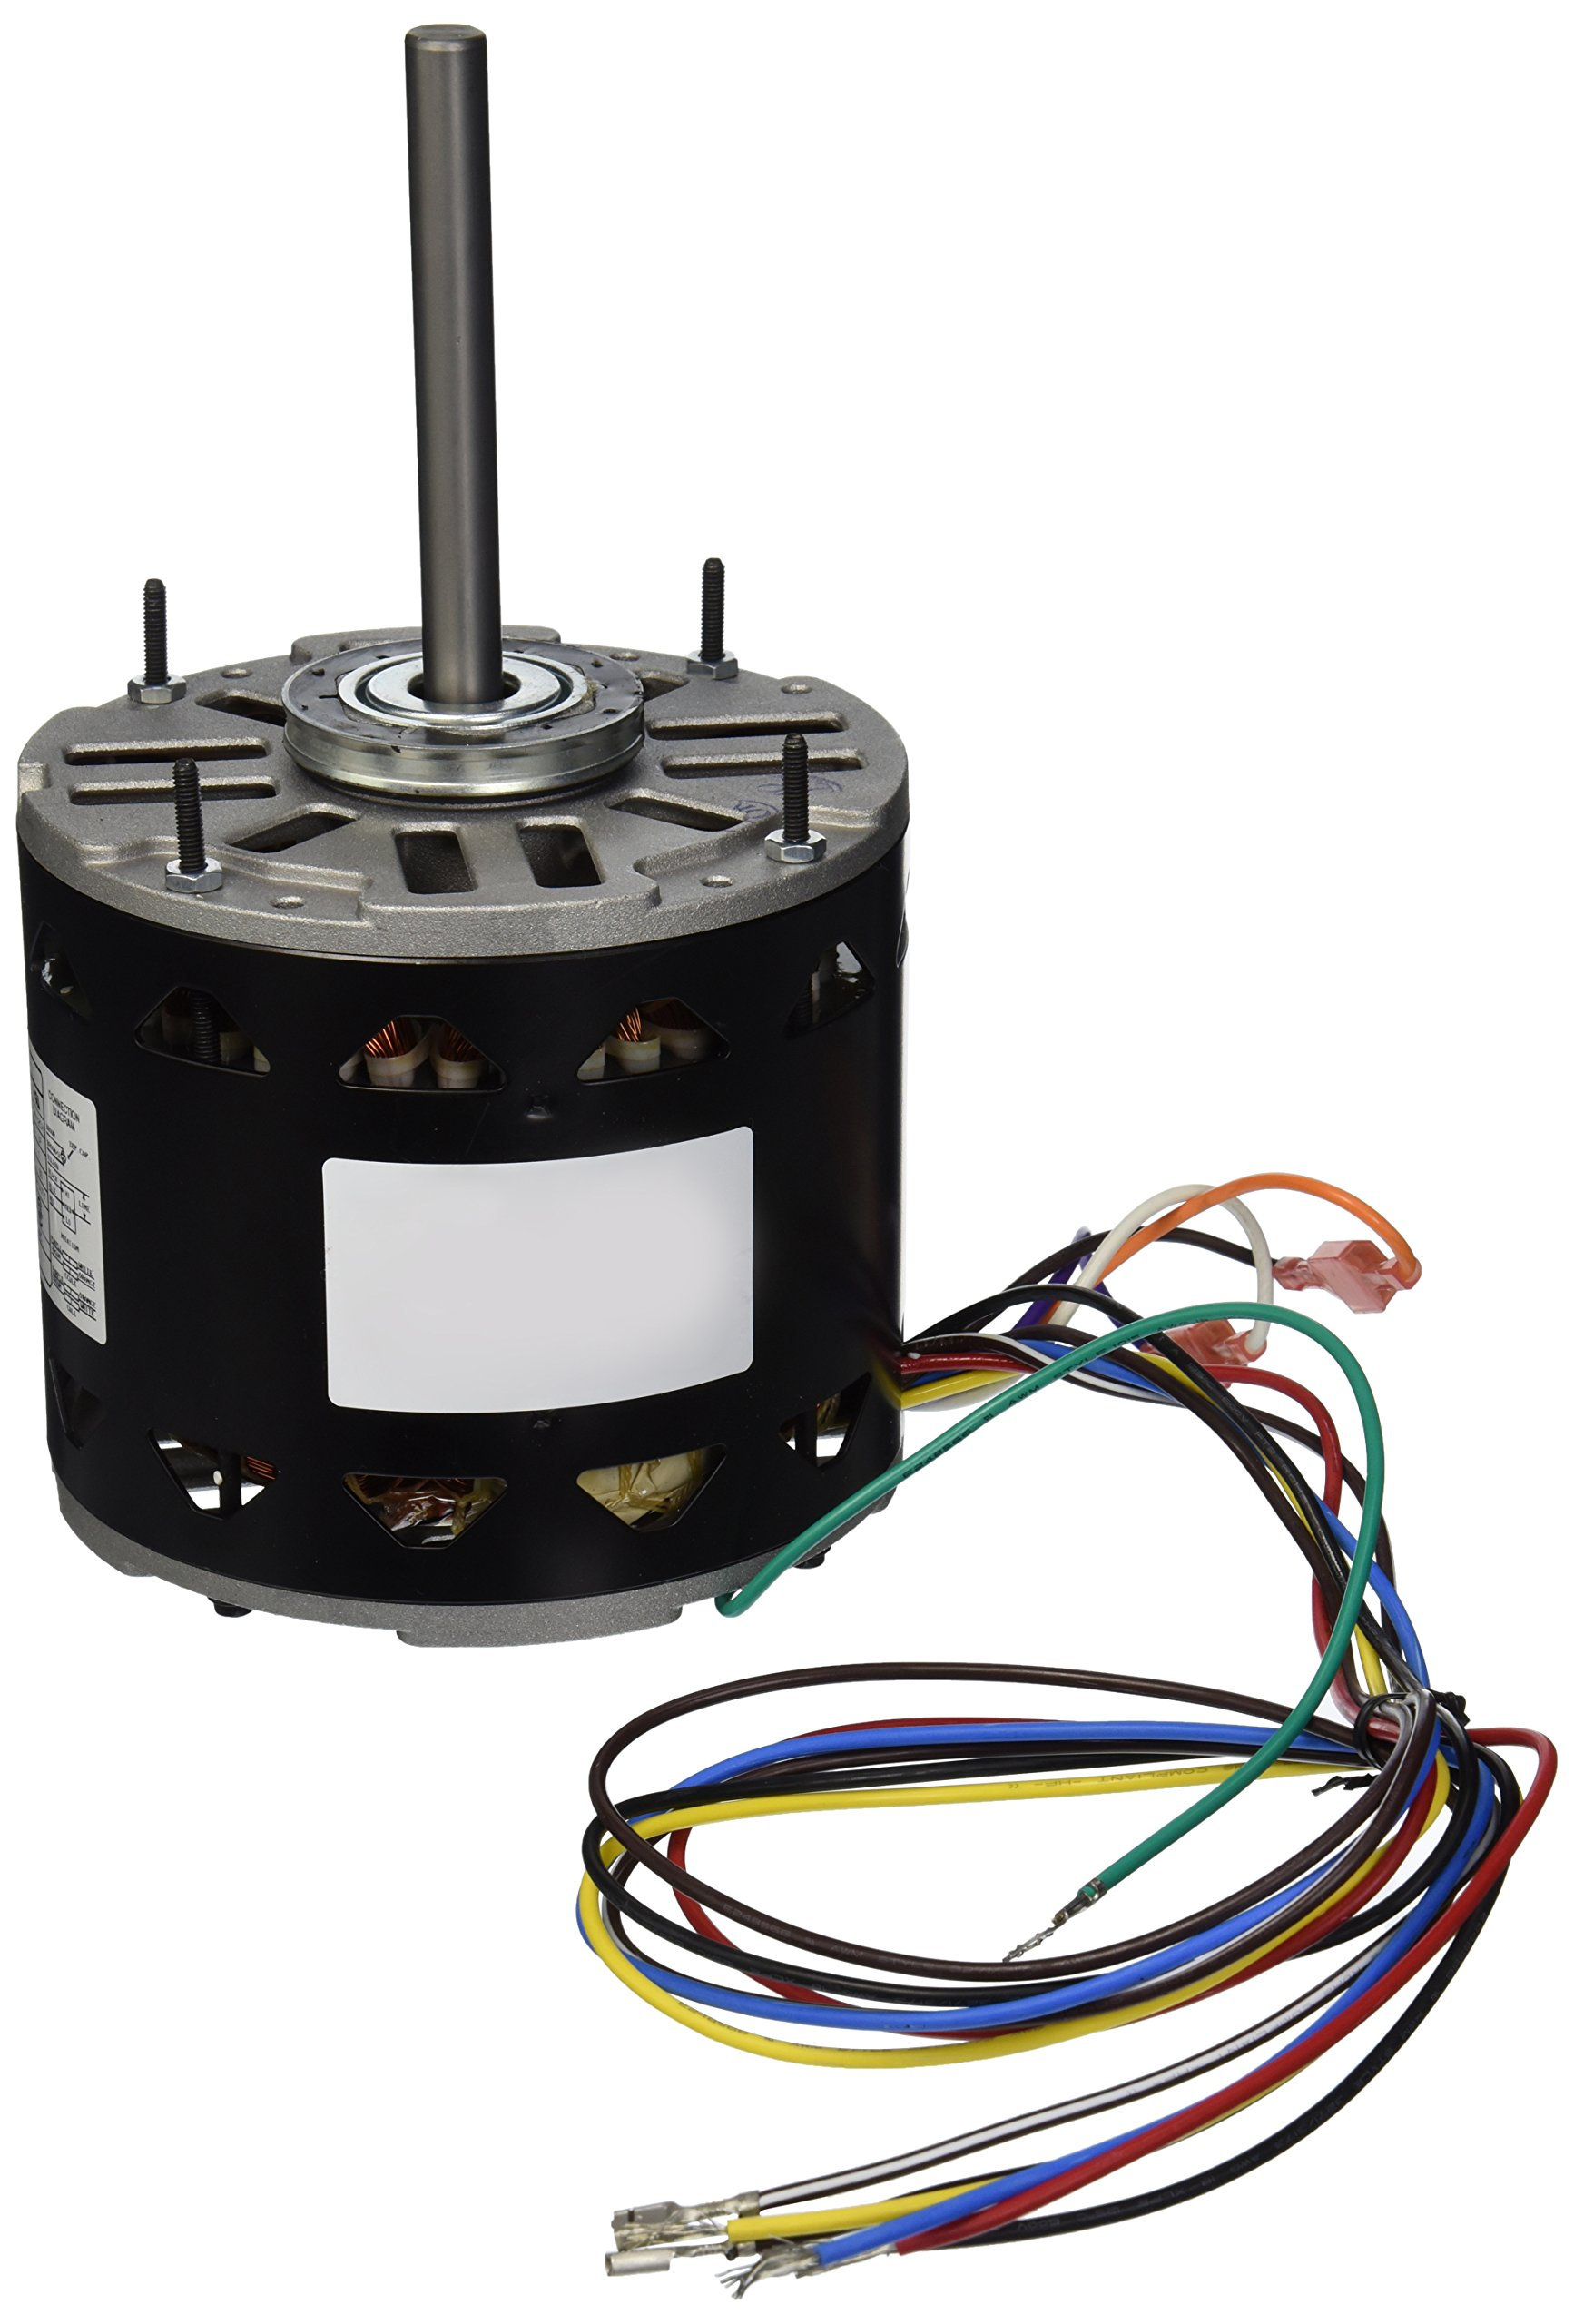 A.O. Smith D1056 1/2 HP, 1075 RPM, 3 Speed, 208-230 Volts3.2-4.3 Amps, 48Y Frame, Sleeve Bearing Direct Drive Blower Motor